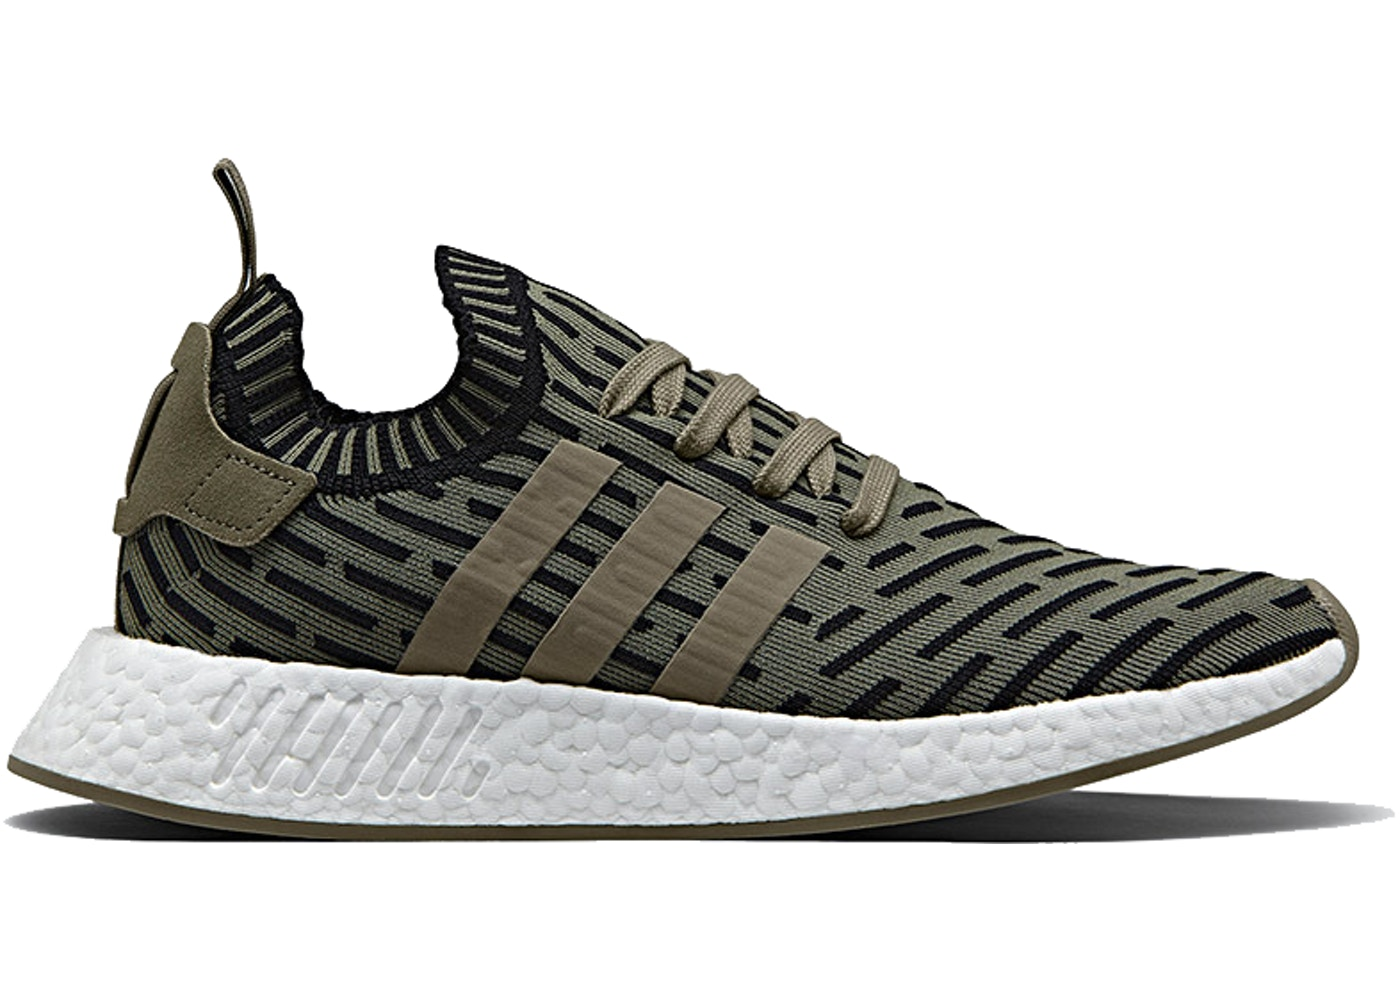 f25401c39bcbe adidas NMD R2 Shoes - Total Sold